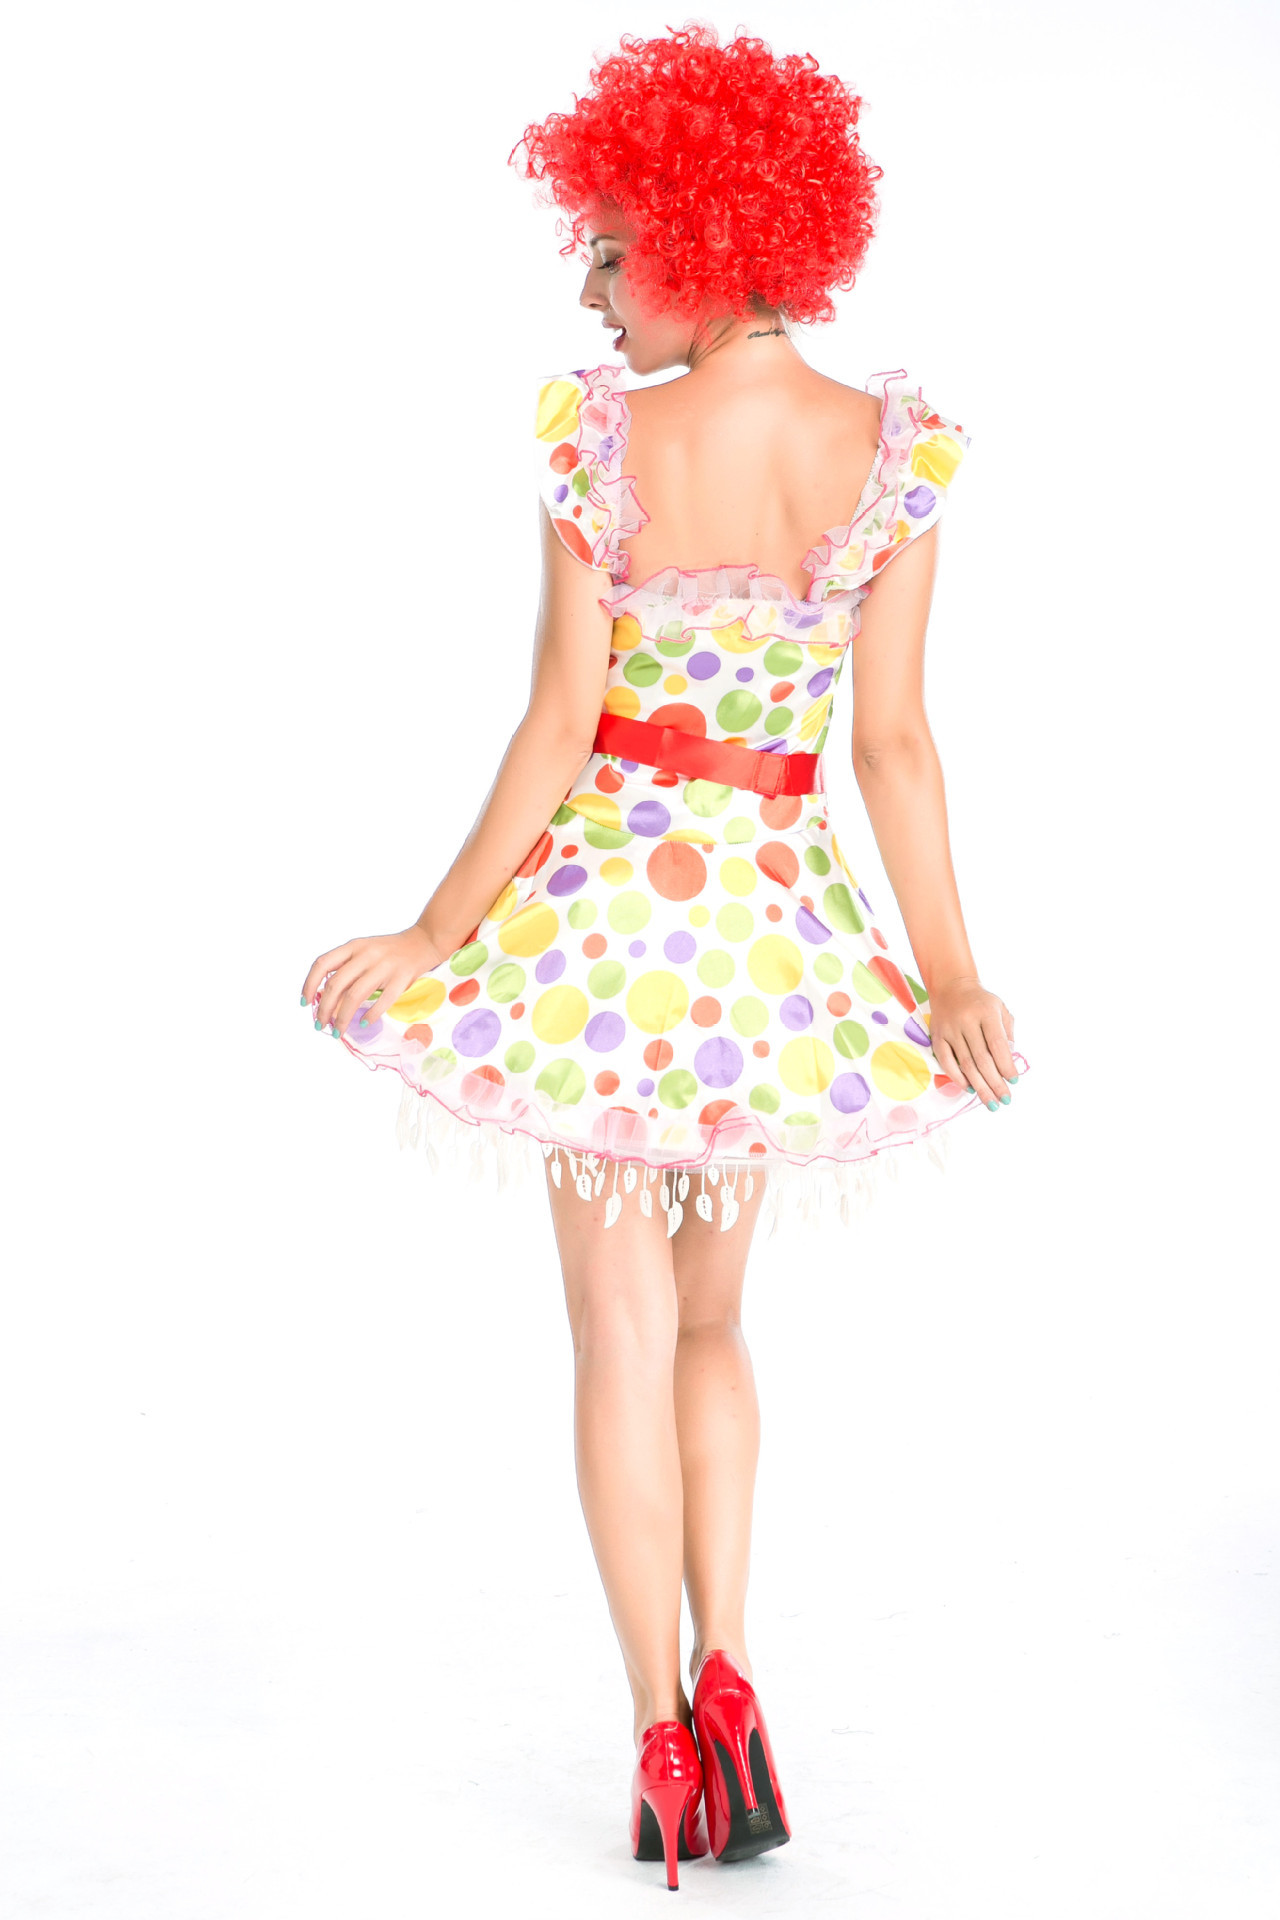 Circus Clown role play costume cartoon costume with wig Denis cosplay costume Halloween Costume